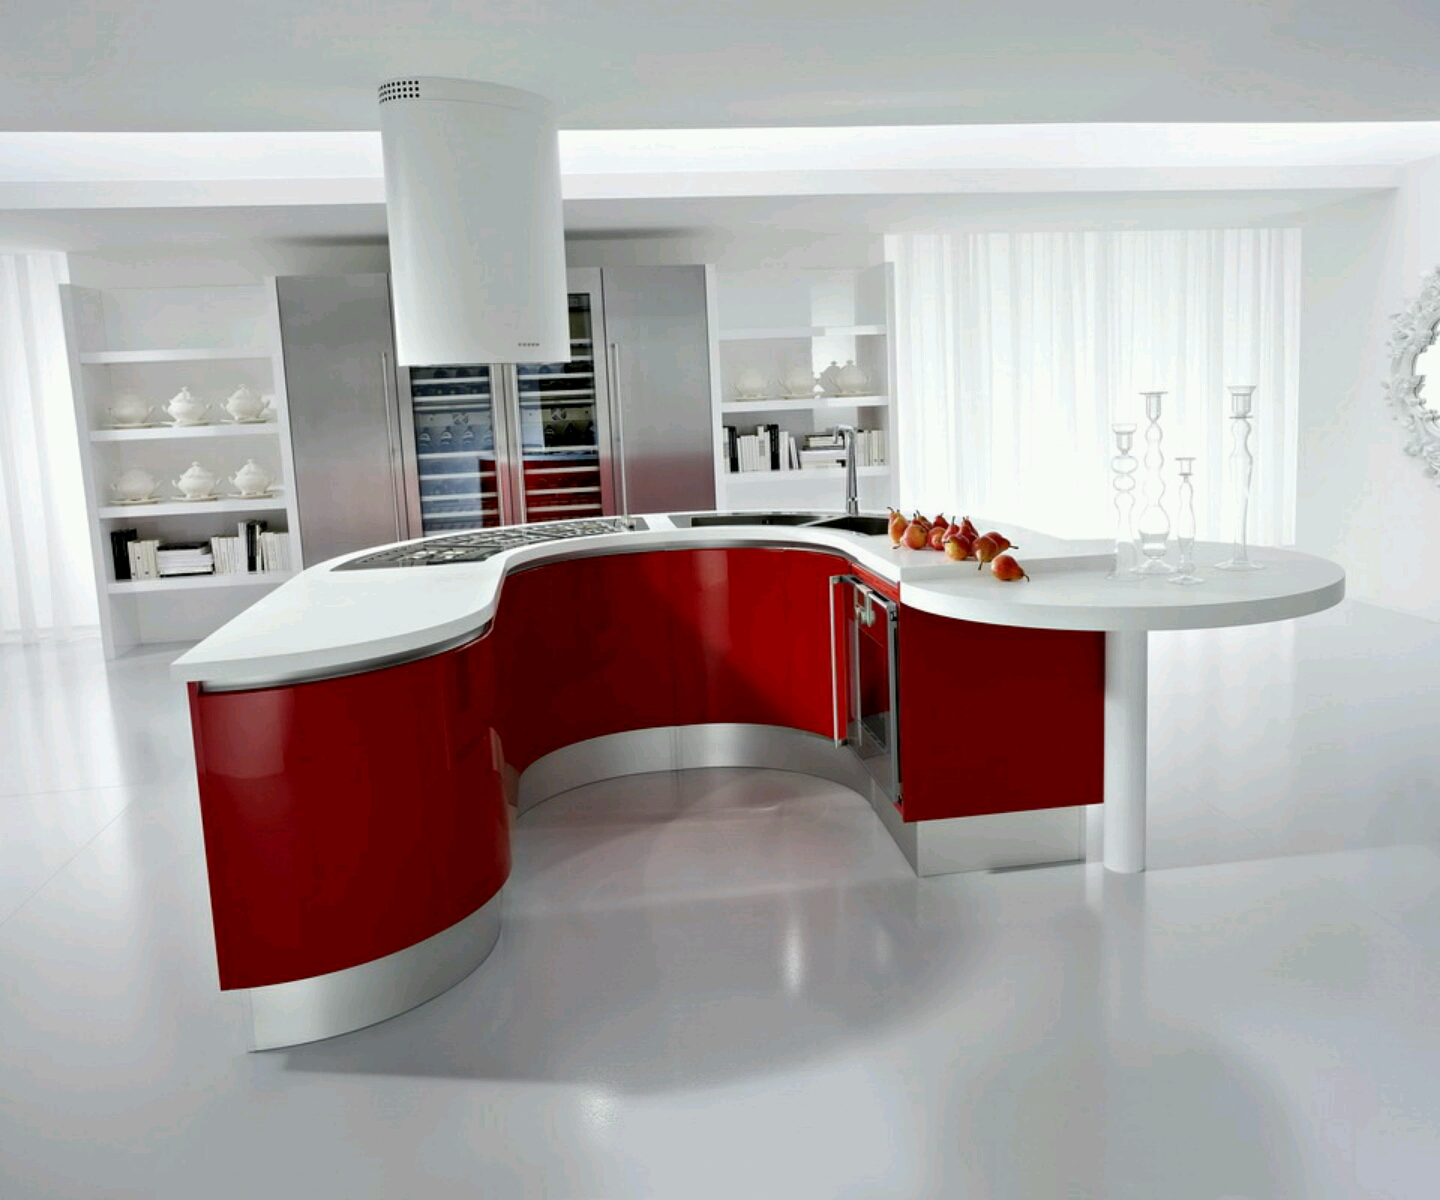 Modern kitchen cabinets designs ideas furniture gallery for Contemporary kitchen design